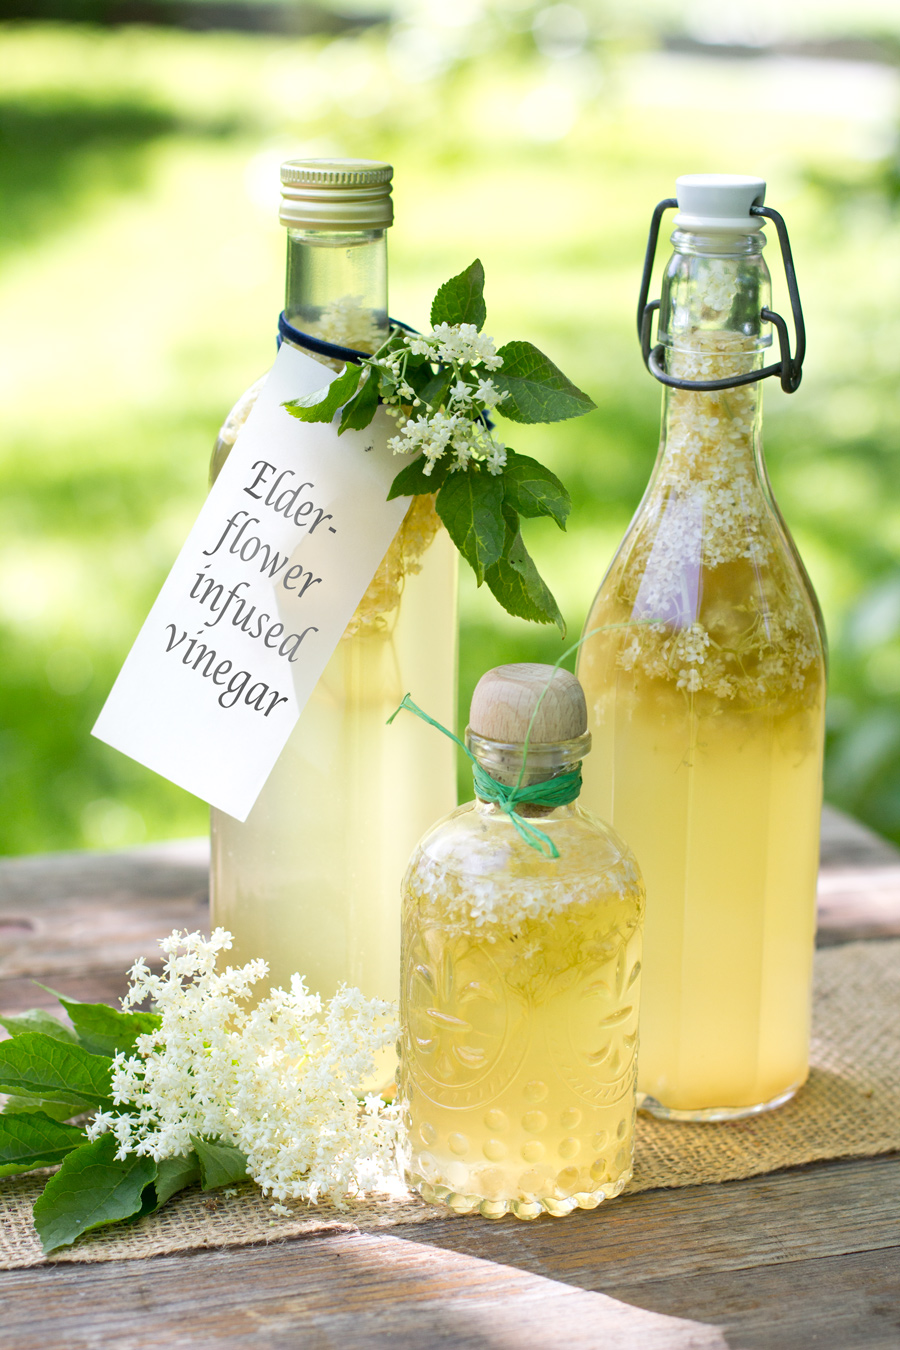 To take your summer salads to the next level, make this elderflower infused vinegar. Done in 10 mins and makes a great present from your kitchen as well!